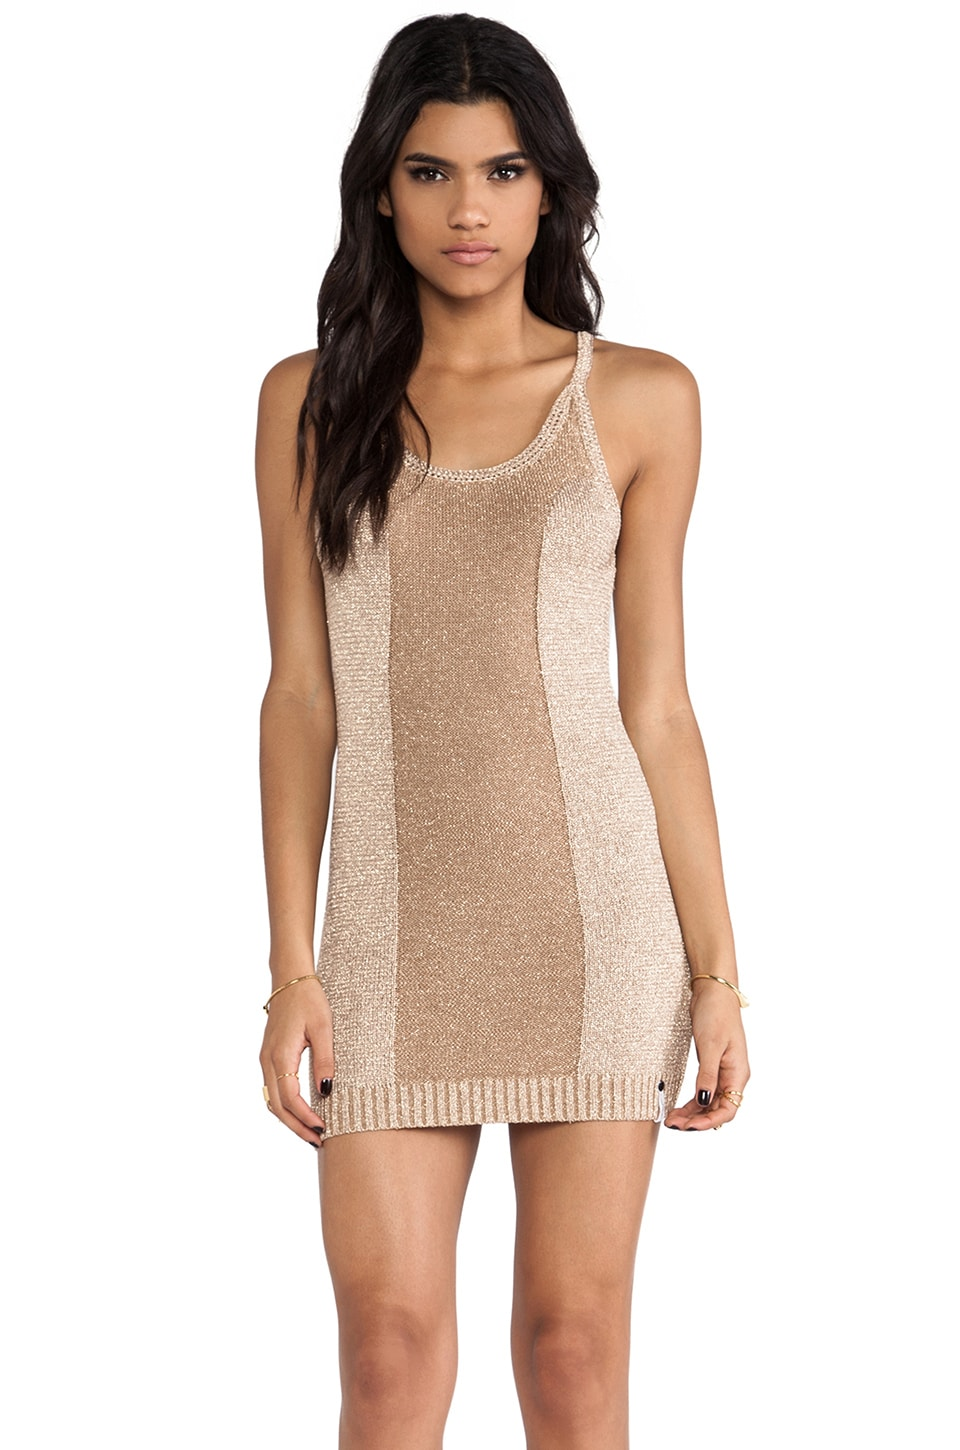 One Teaspoon Pacifica Knit Dress in Rose Gold